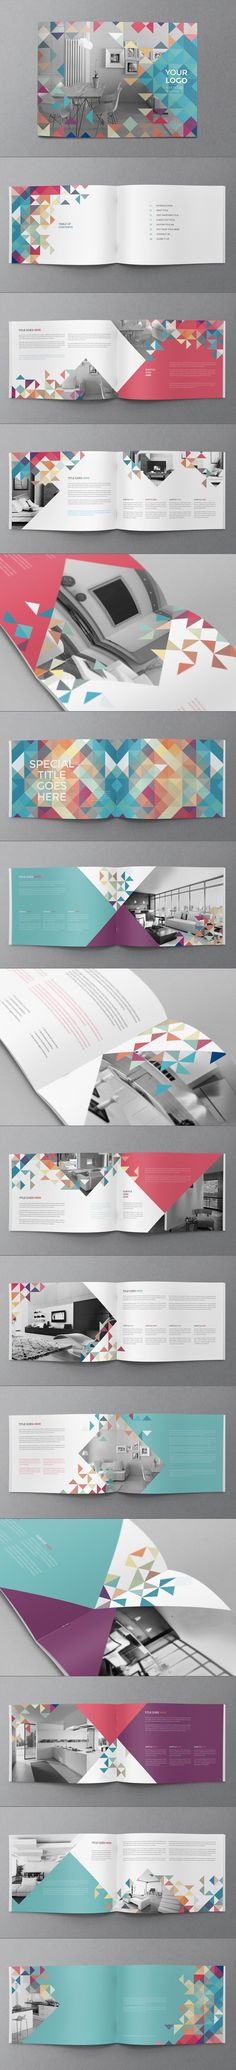 Minimal Colorful Brochure by Abra Design, via Behance                                                                                                                                                                                 Mais